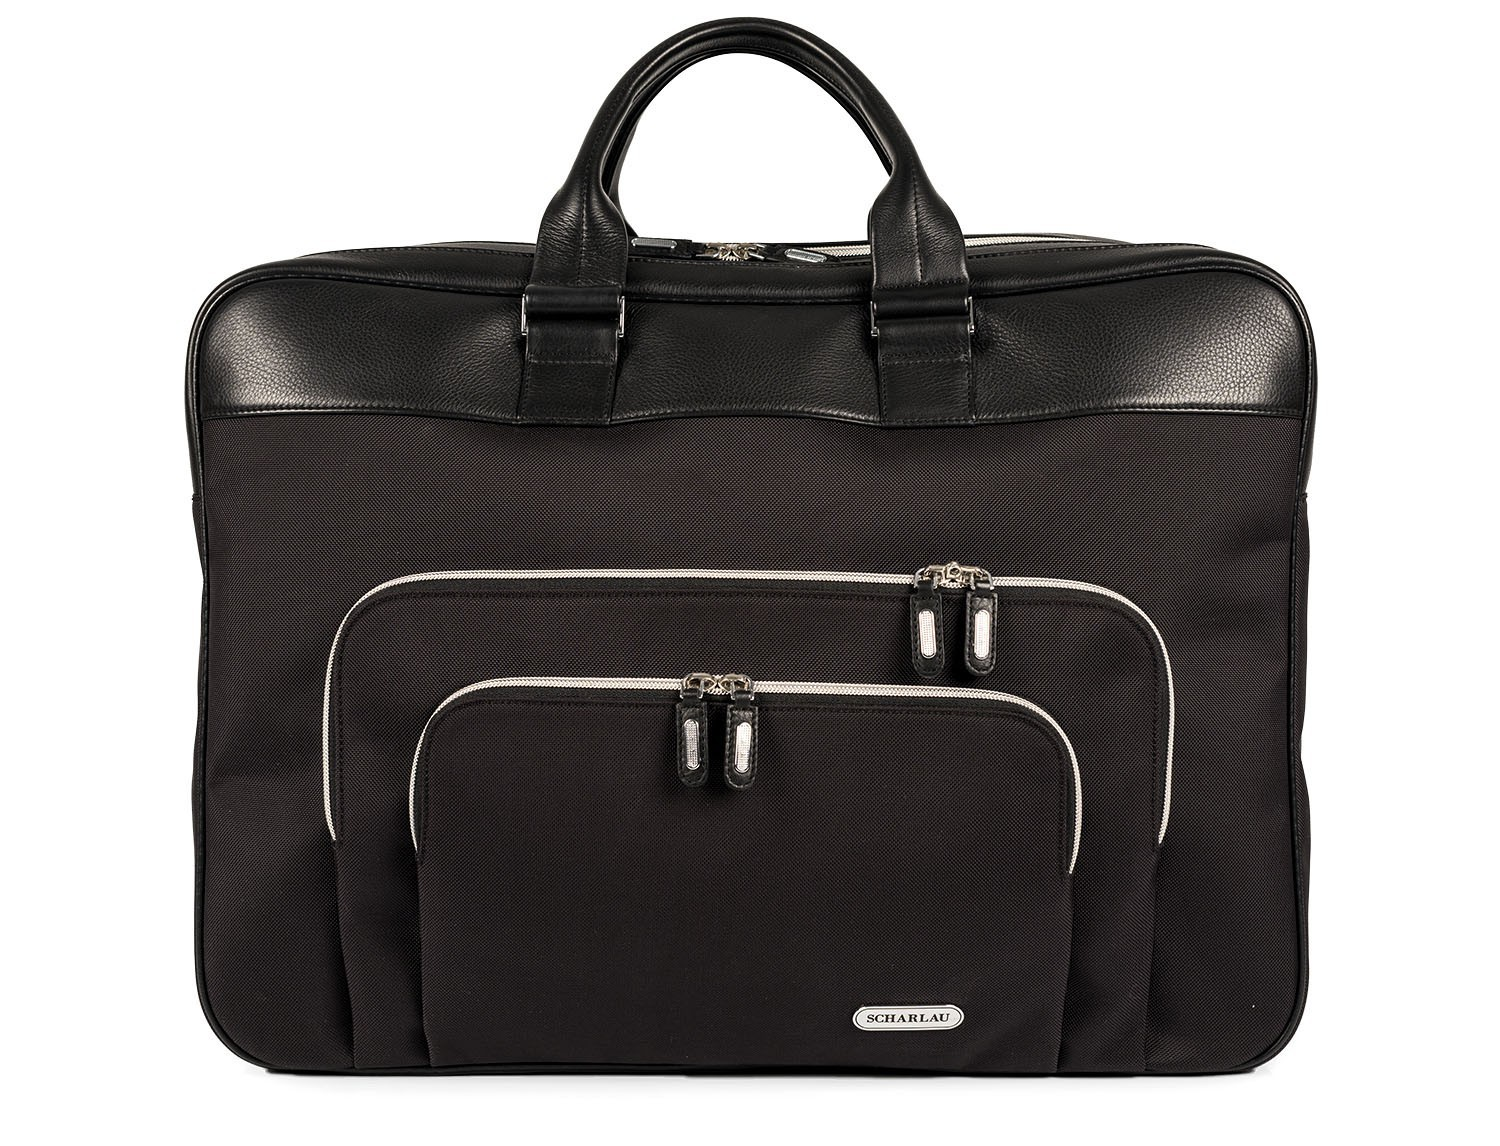 Large travelling bag in ballistic nylon cabin size front